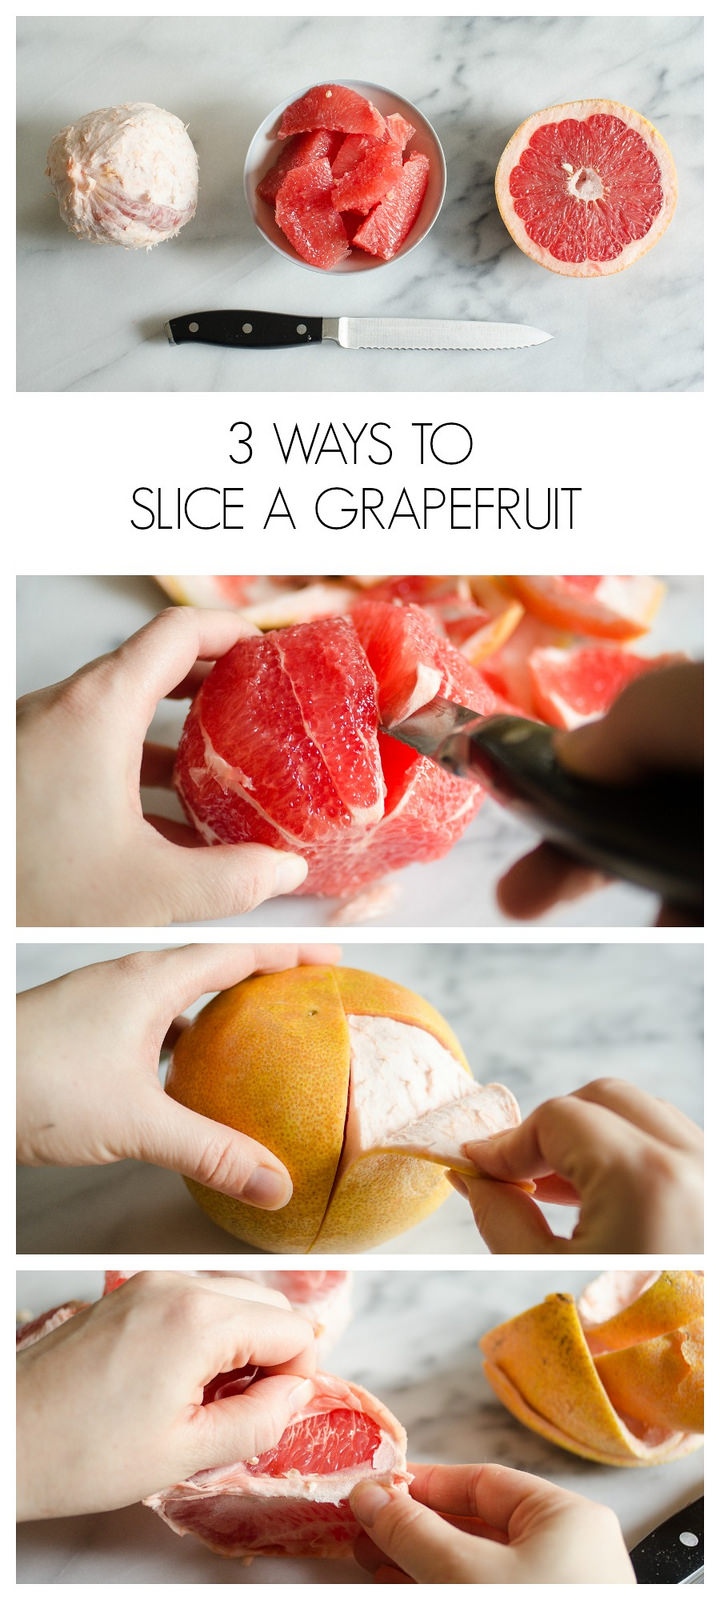 3 Ways to Slice a Grapefruit